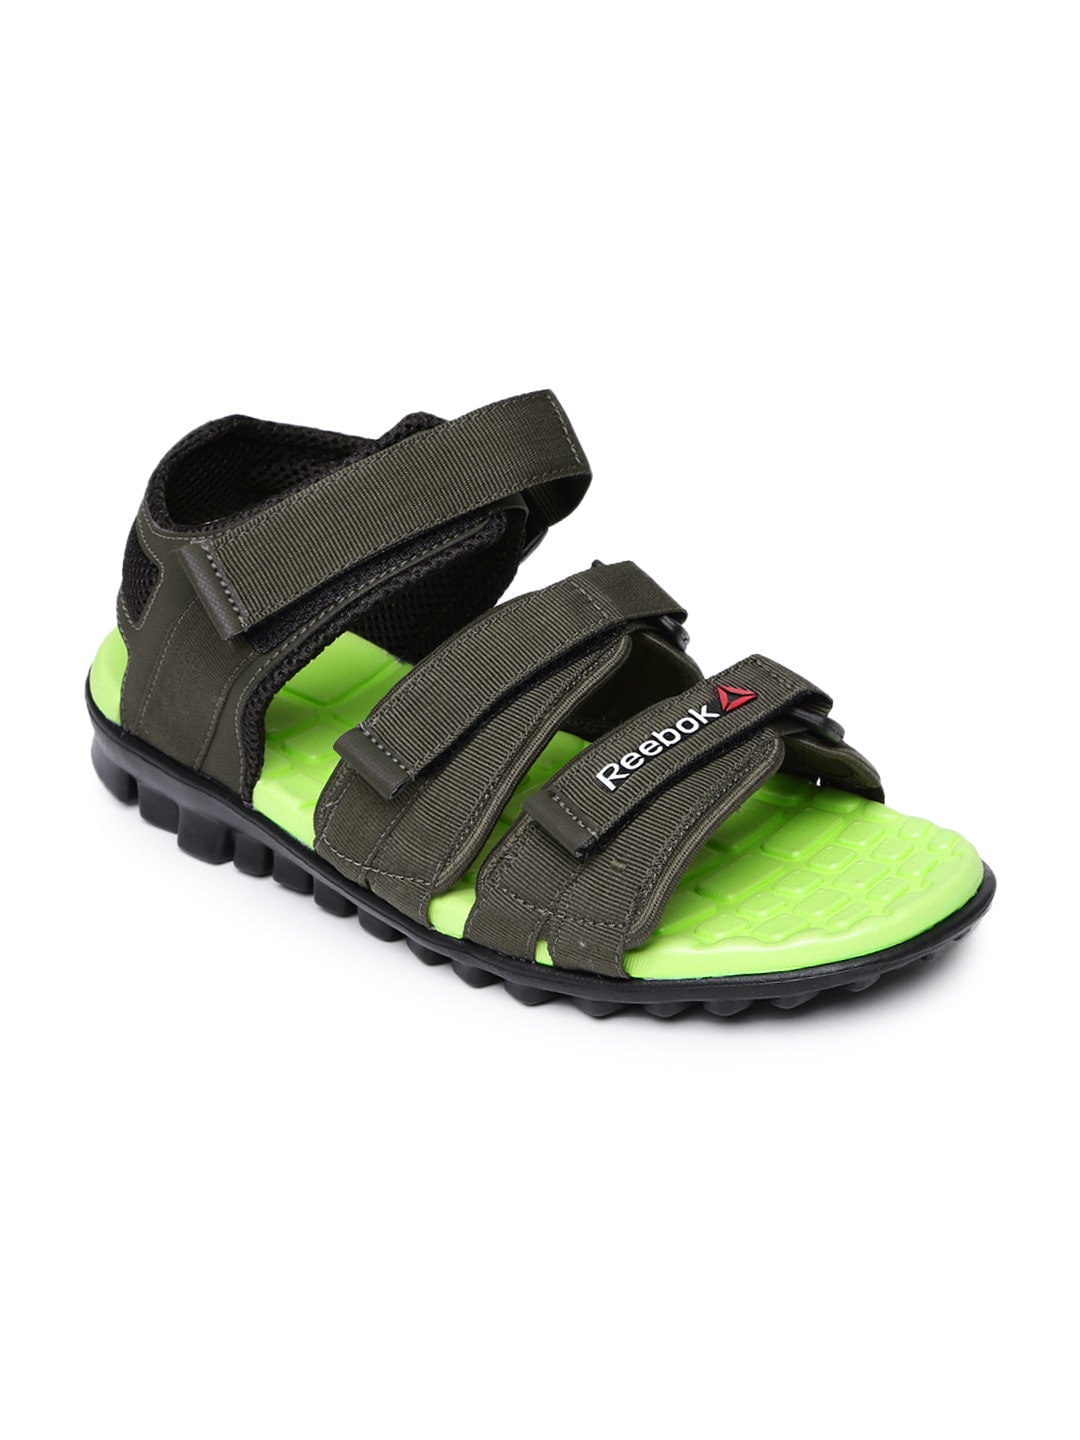 13cd7c742 Reebok Floaters - Buy Reebok Sports Sandals online in India